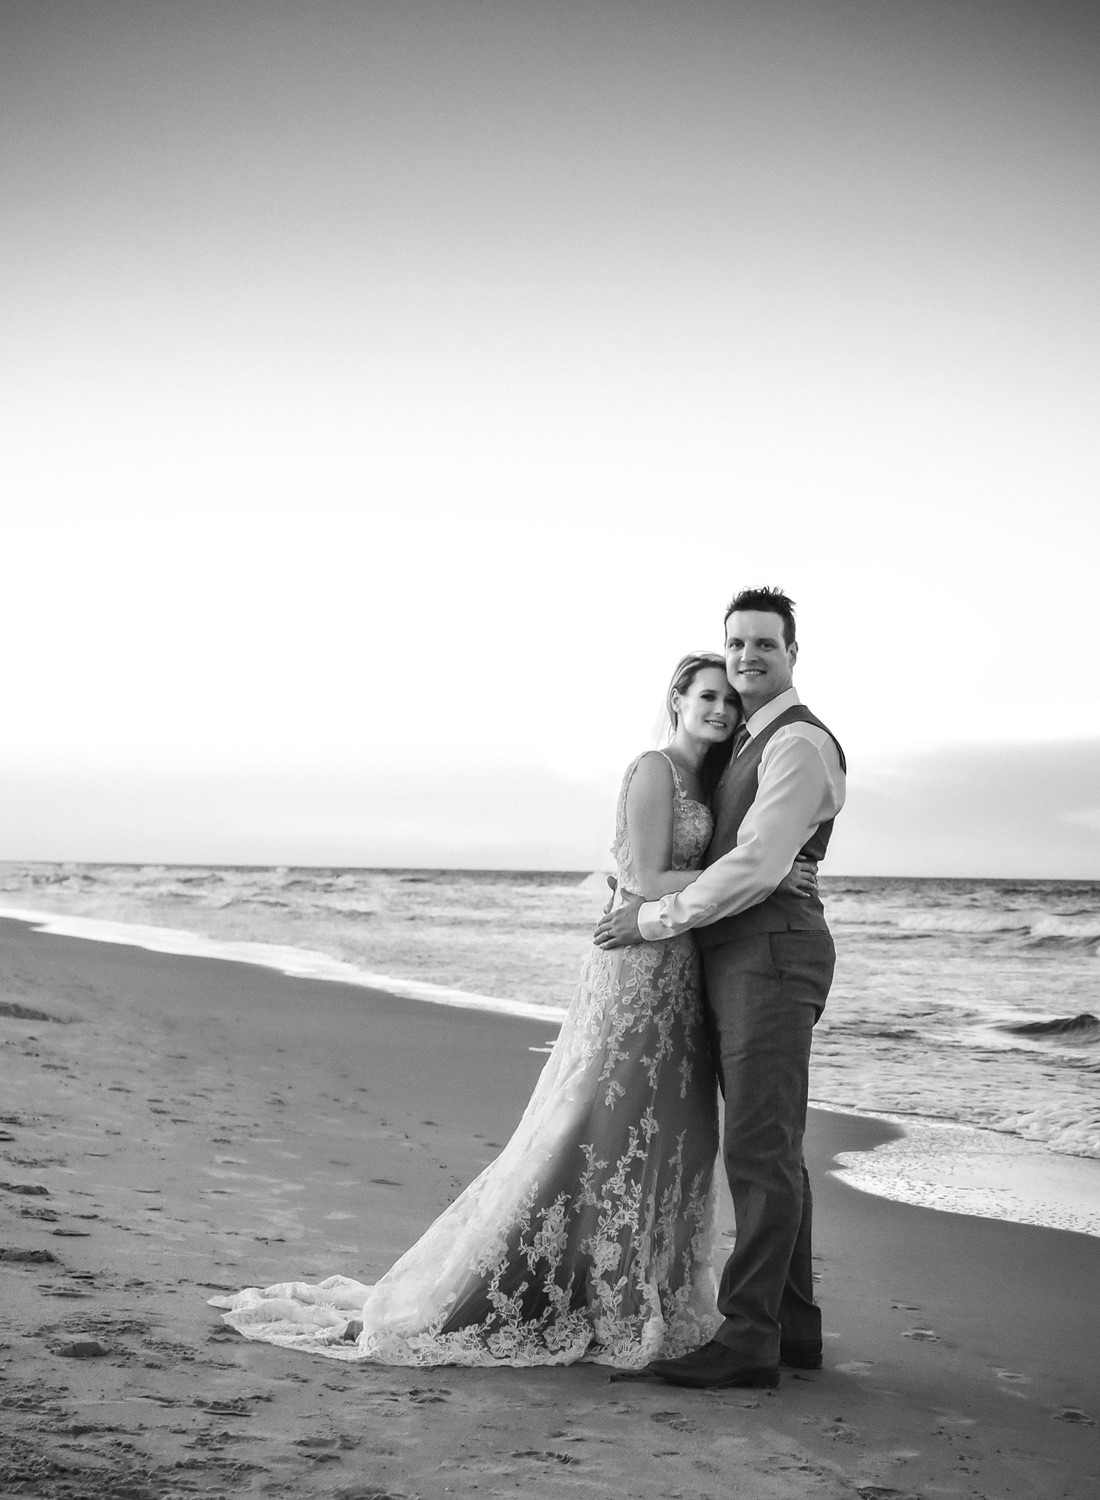 wedding-beach-portrait-bride-and-groom-virginia-beach.jpg